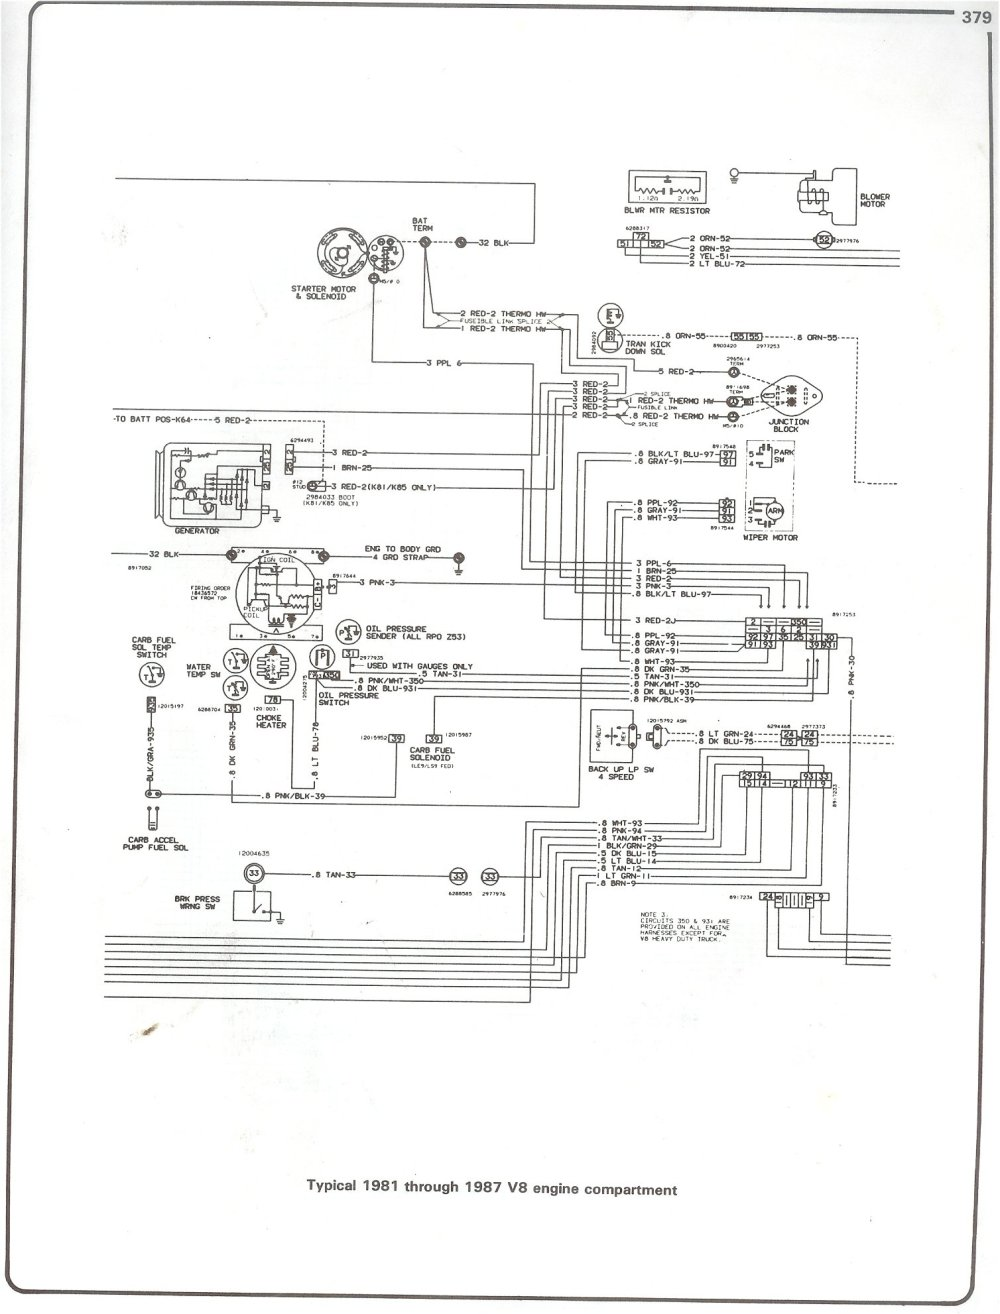 medium resolution of 1984 suburban wiring diagram wiring diagrams one 1997 suburban wiring diagram 1984 suburban wiring diagram